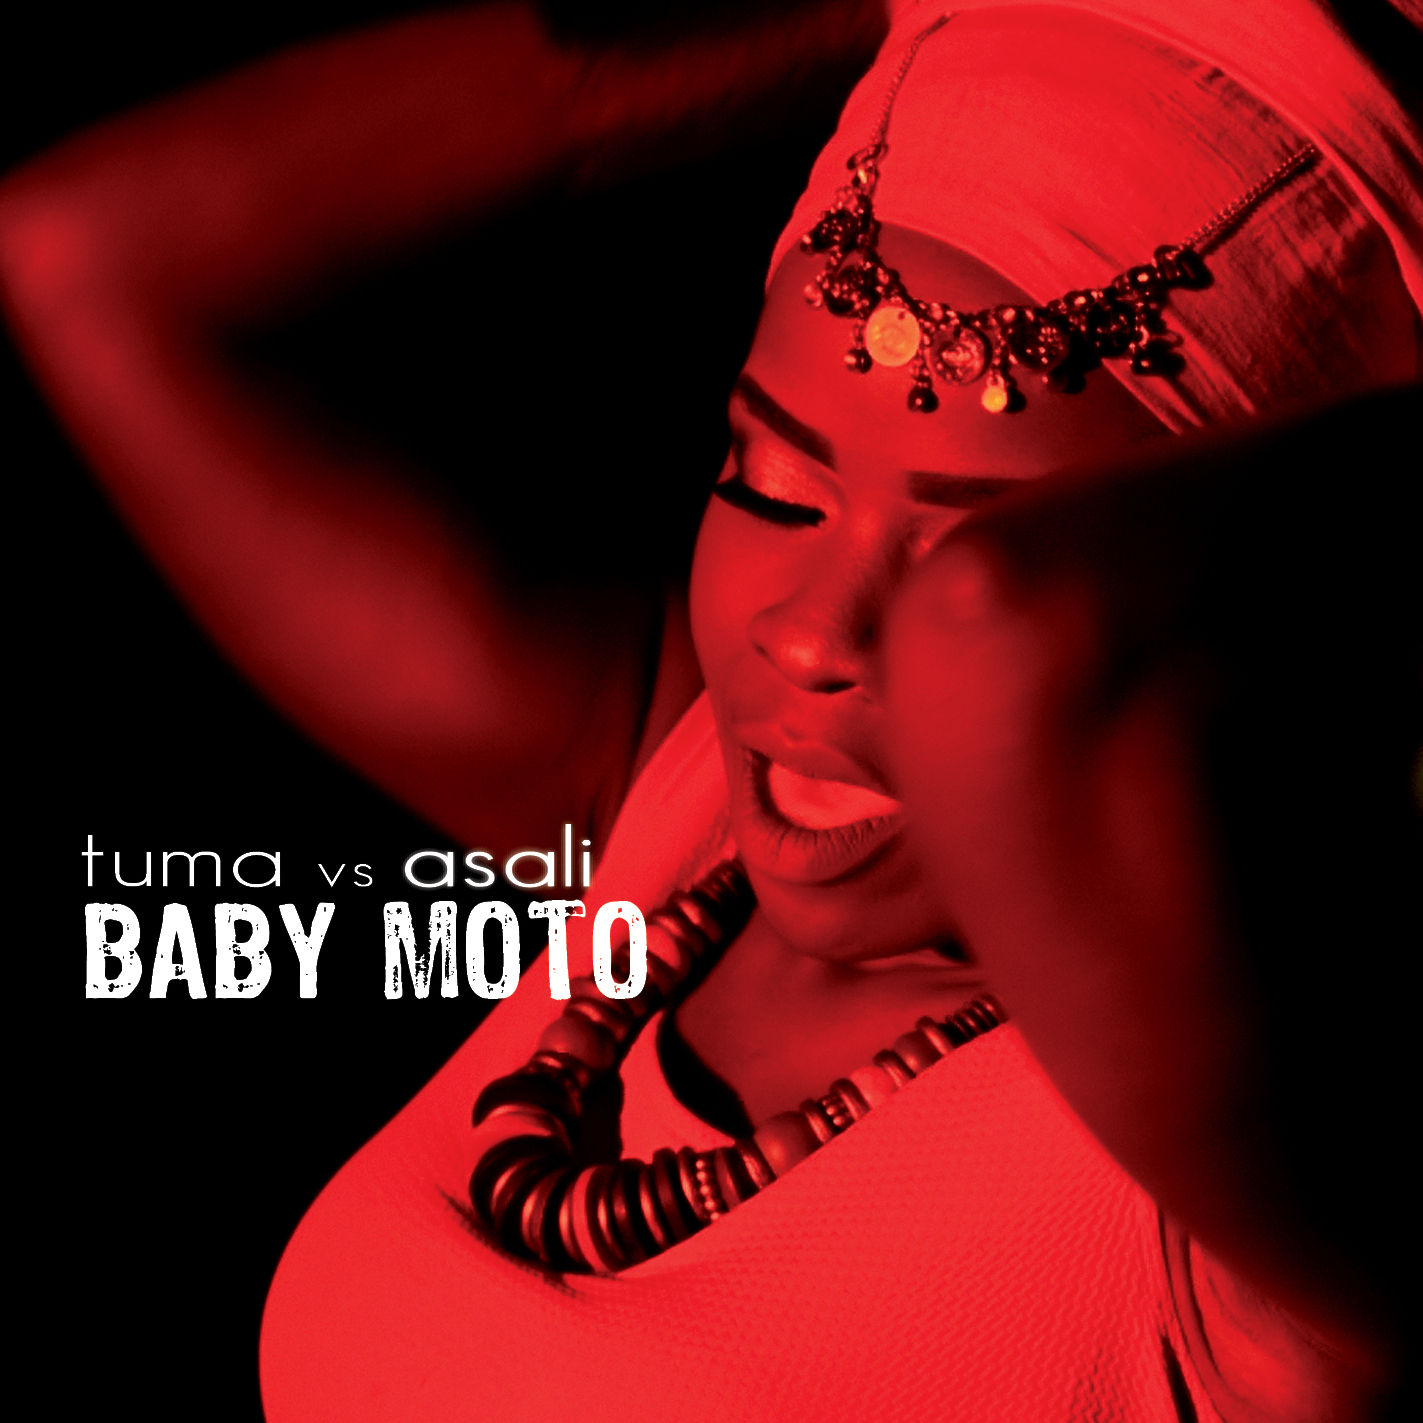 Baby Moto - Front Cover (72dpi)